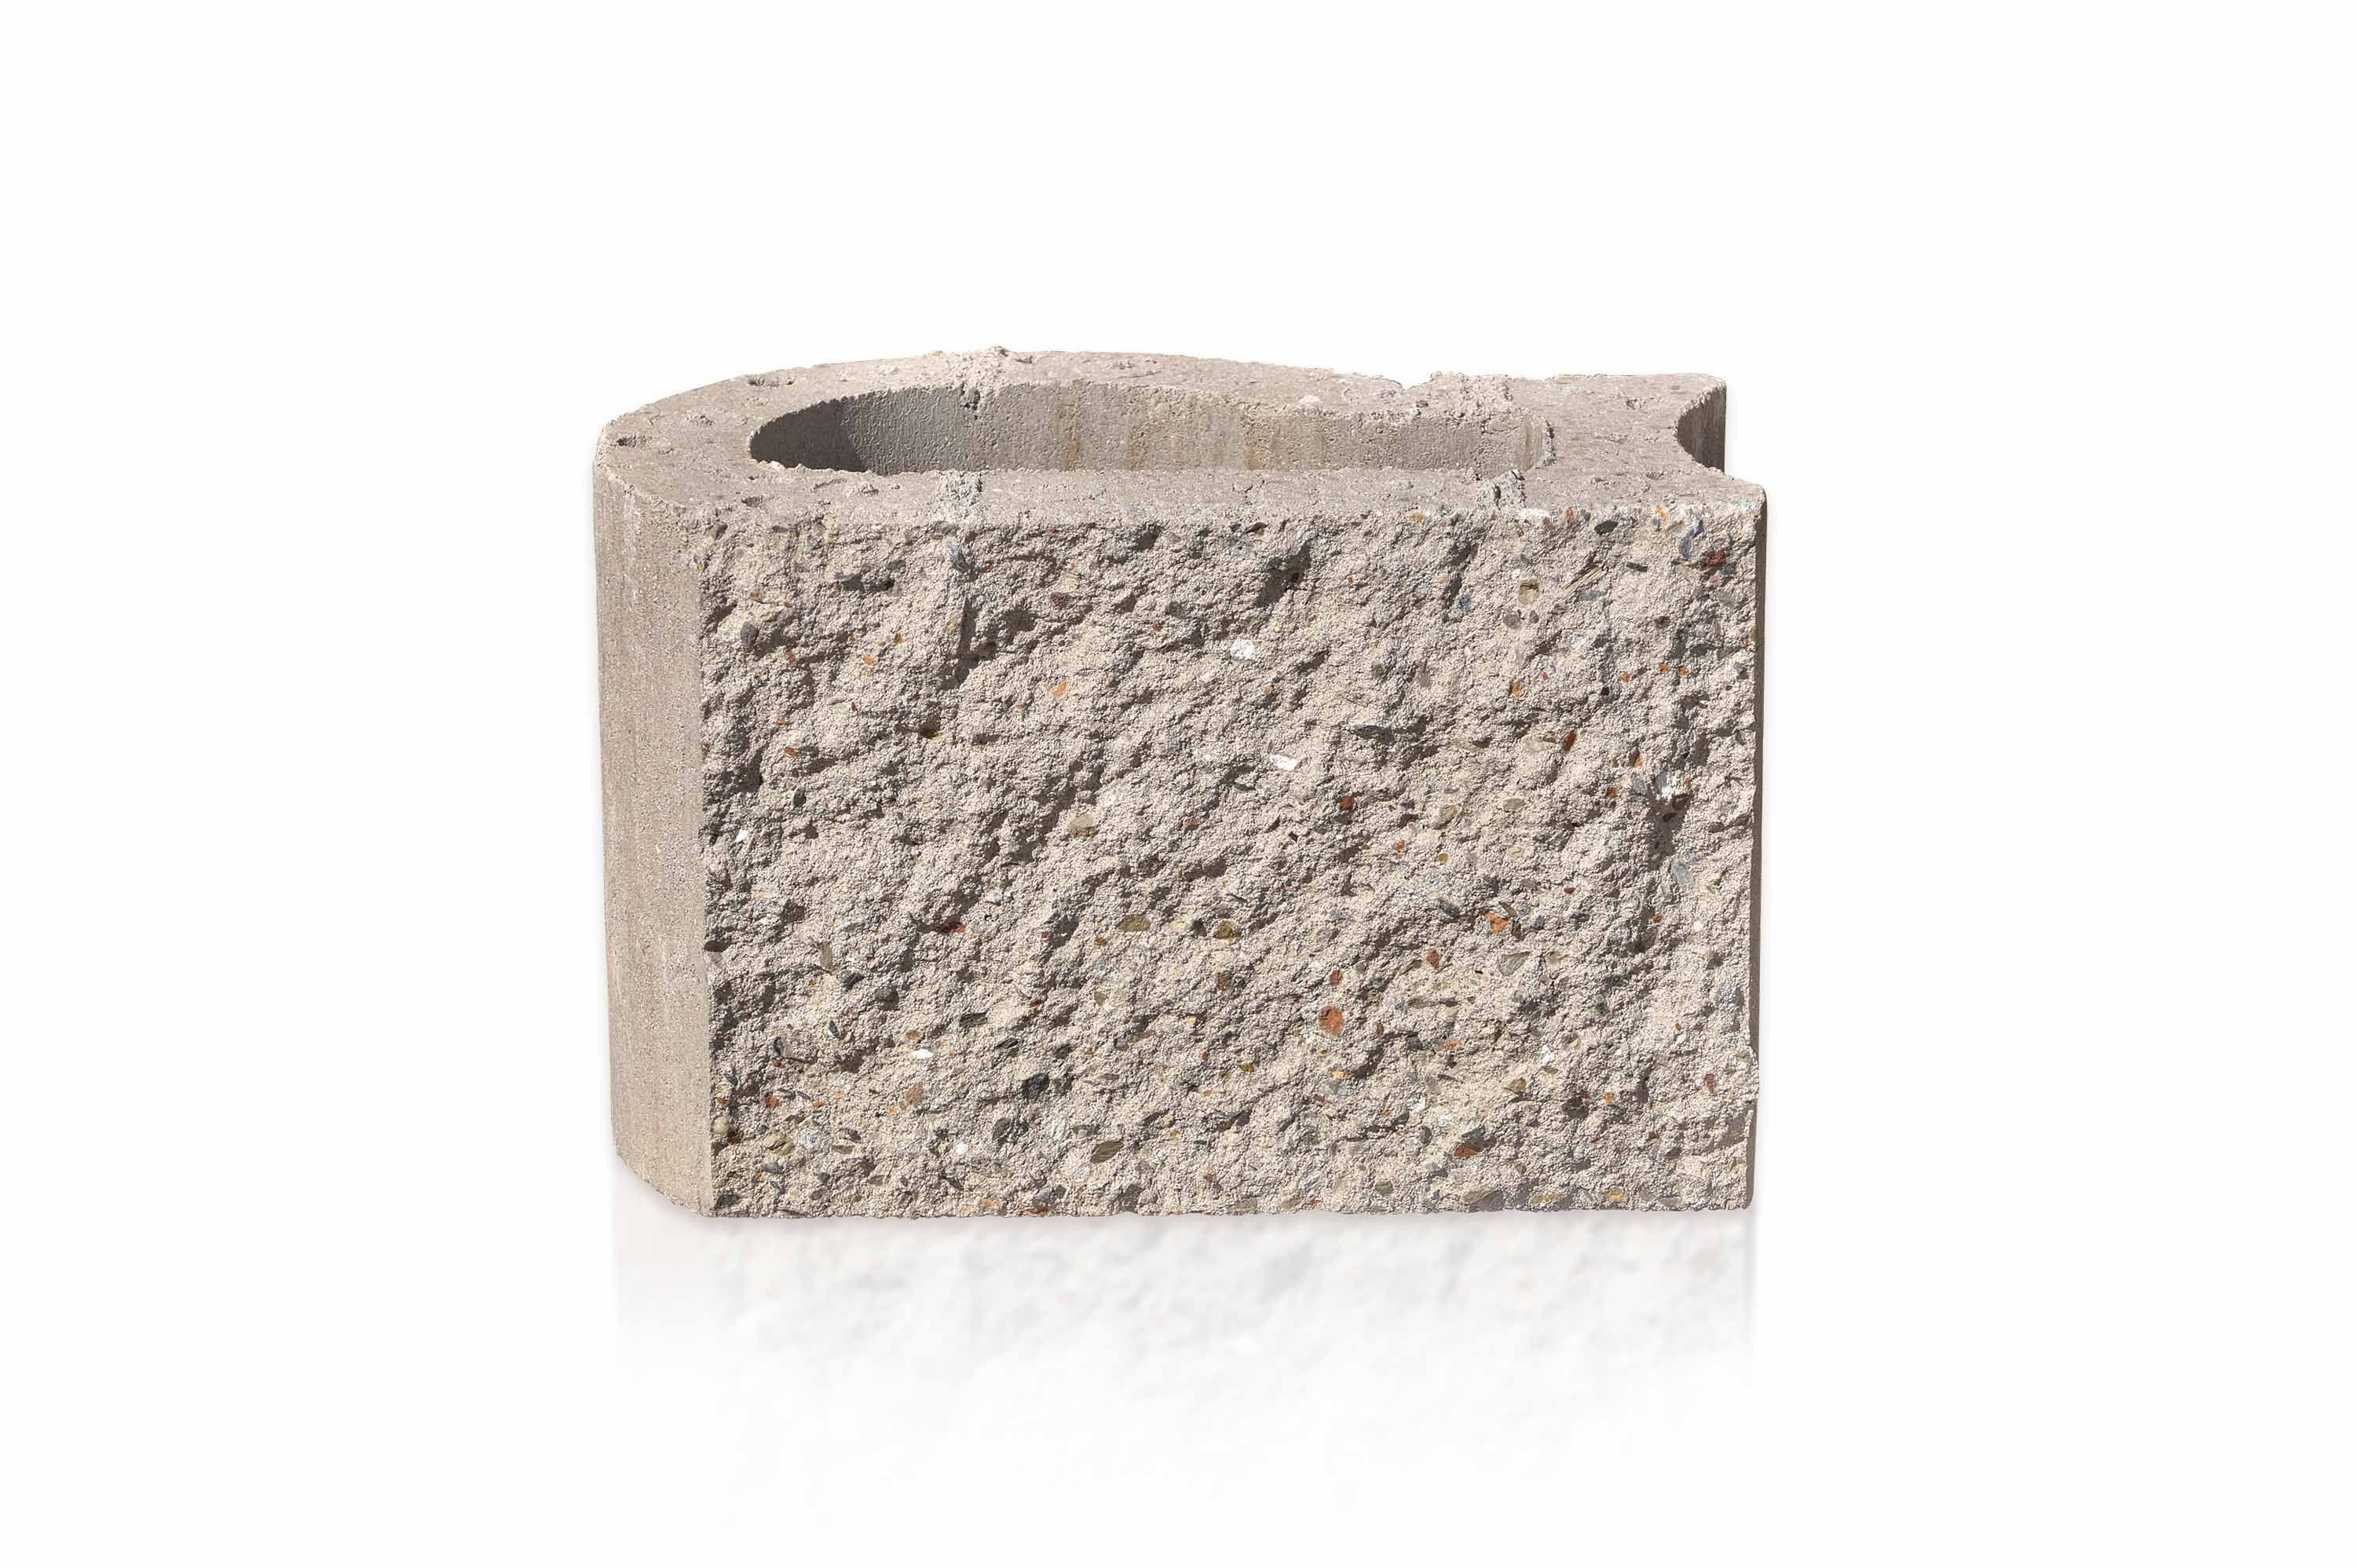 Product Pick Retaining Wall Block Vr18 Uniquely Shaped For Versatile Assembly And Easy Use This Double Fac Retaining Wall Block Concrete Blocks Retaining Wall